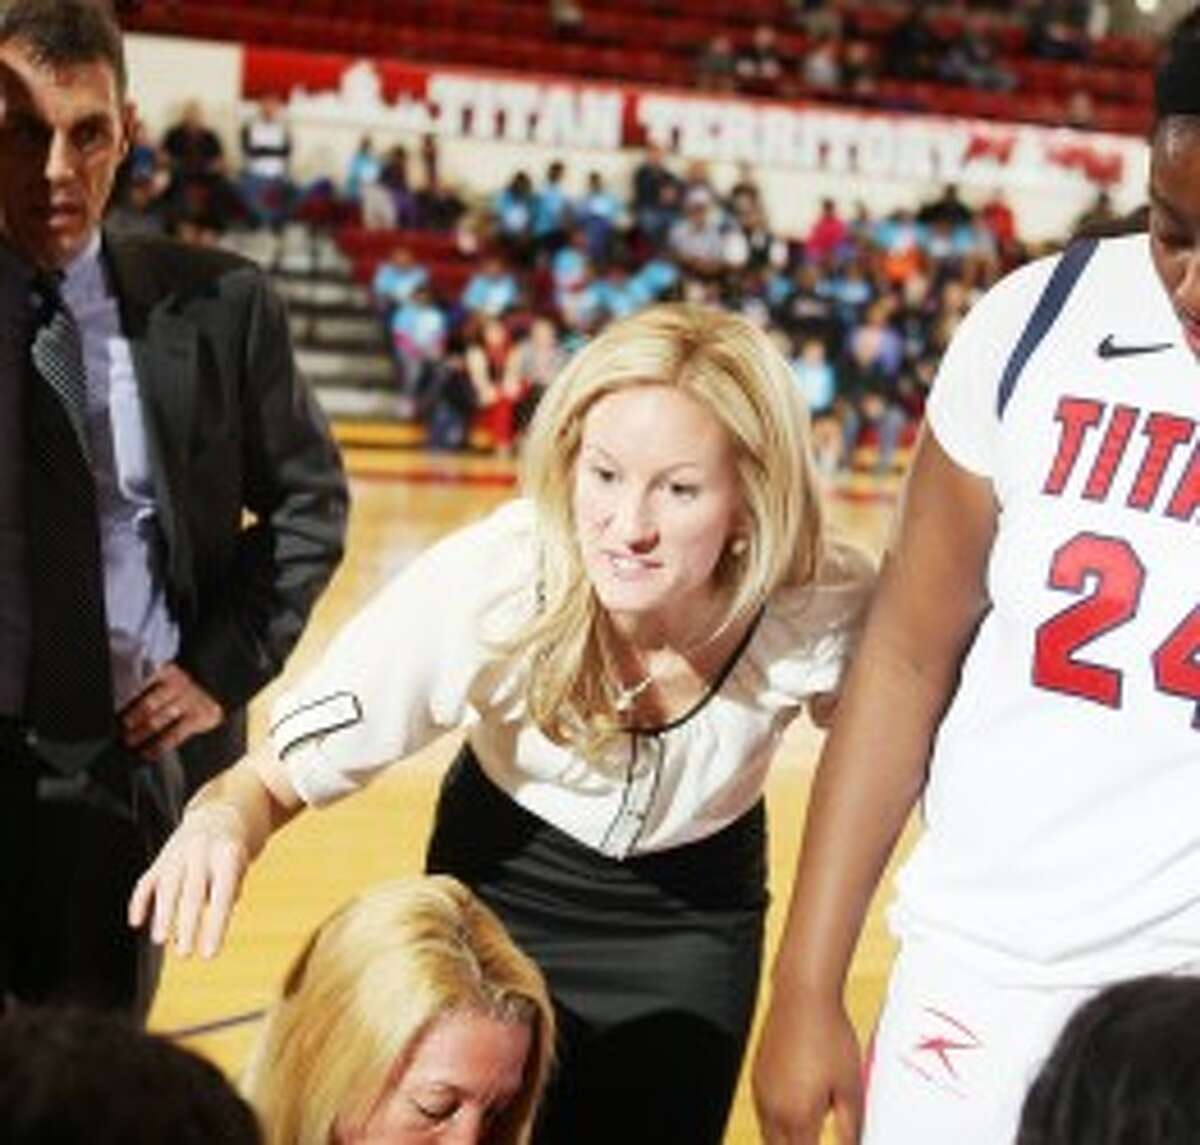 SPEAKING OUT: Emily Geary addresses a player during a timeout earlier this season as an assistant coach at University of Detroit-Mercy. (Courtesy photo)